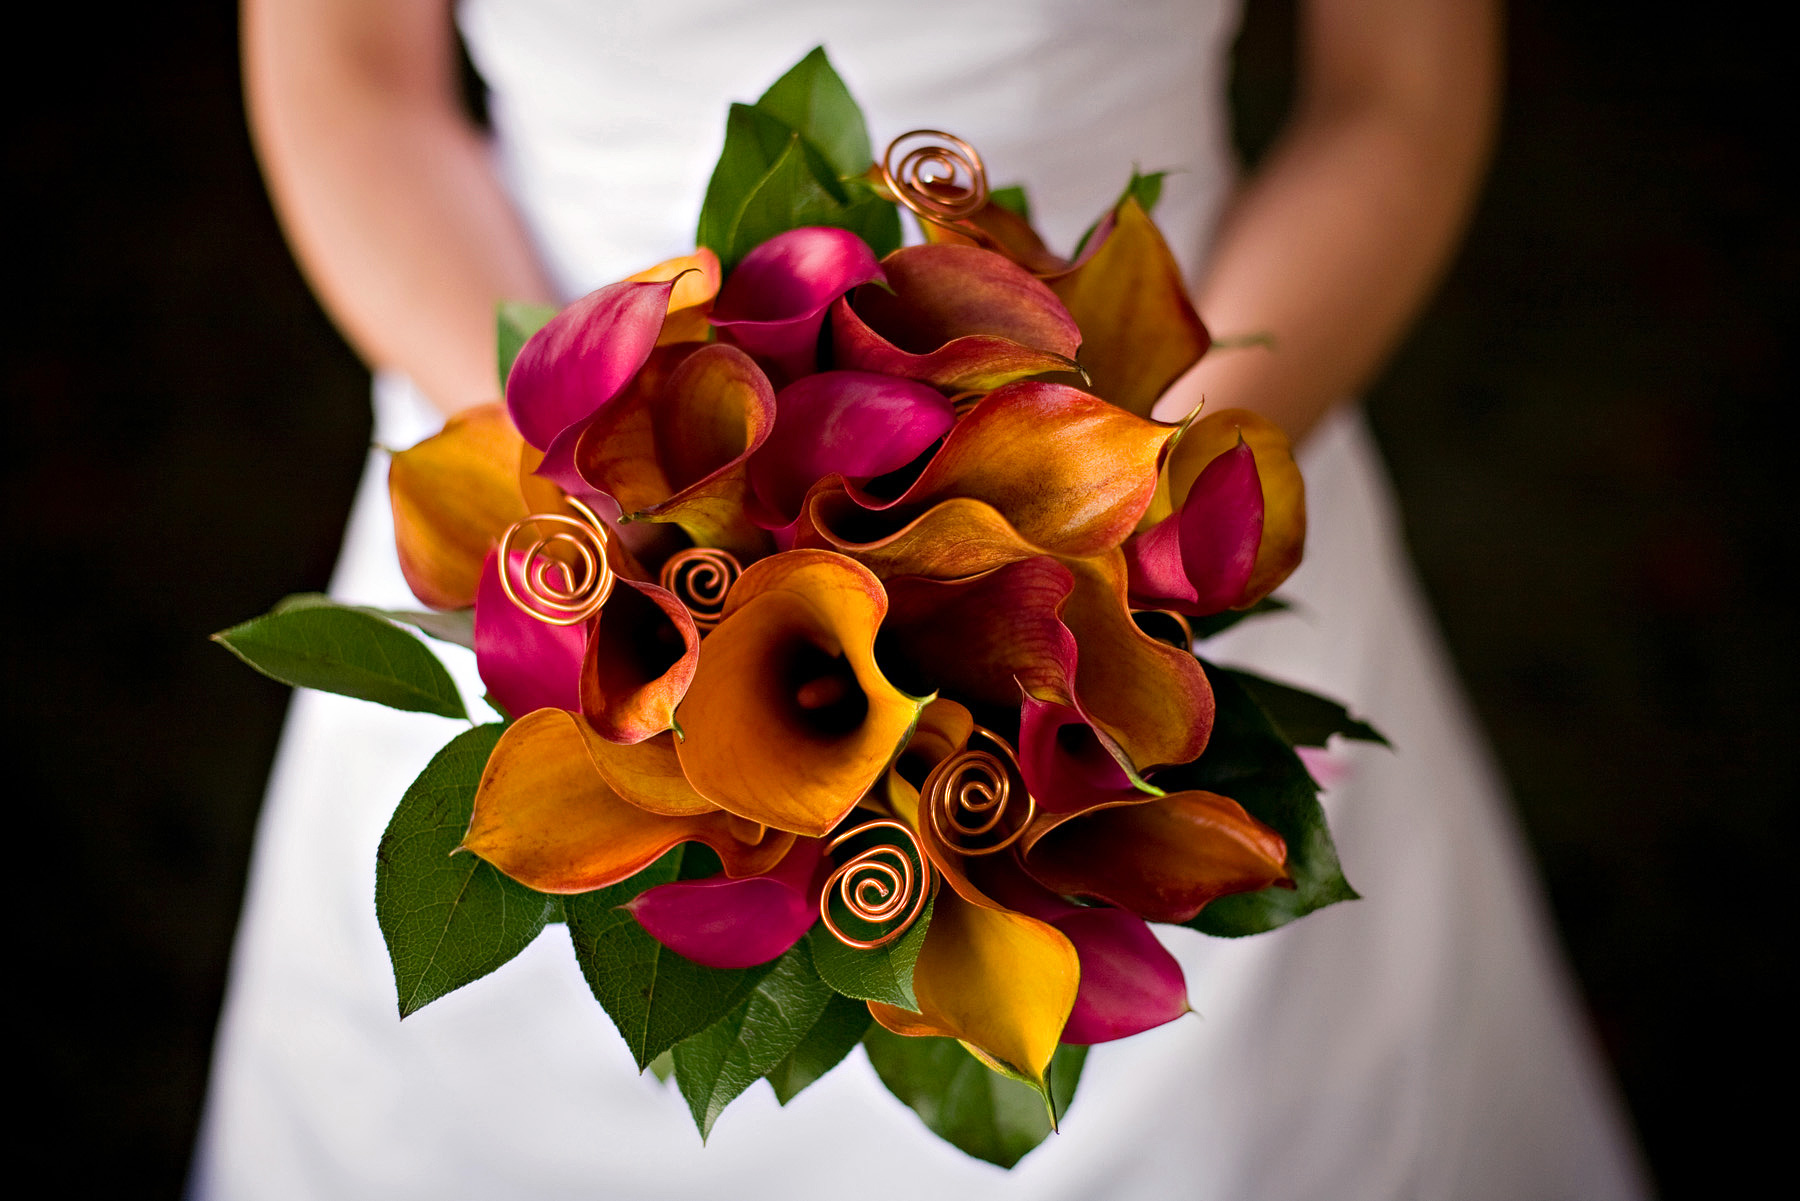 wedding-photography-minneapolis-mark-kegans-456.jpg